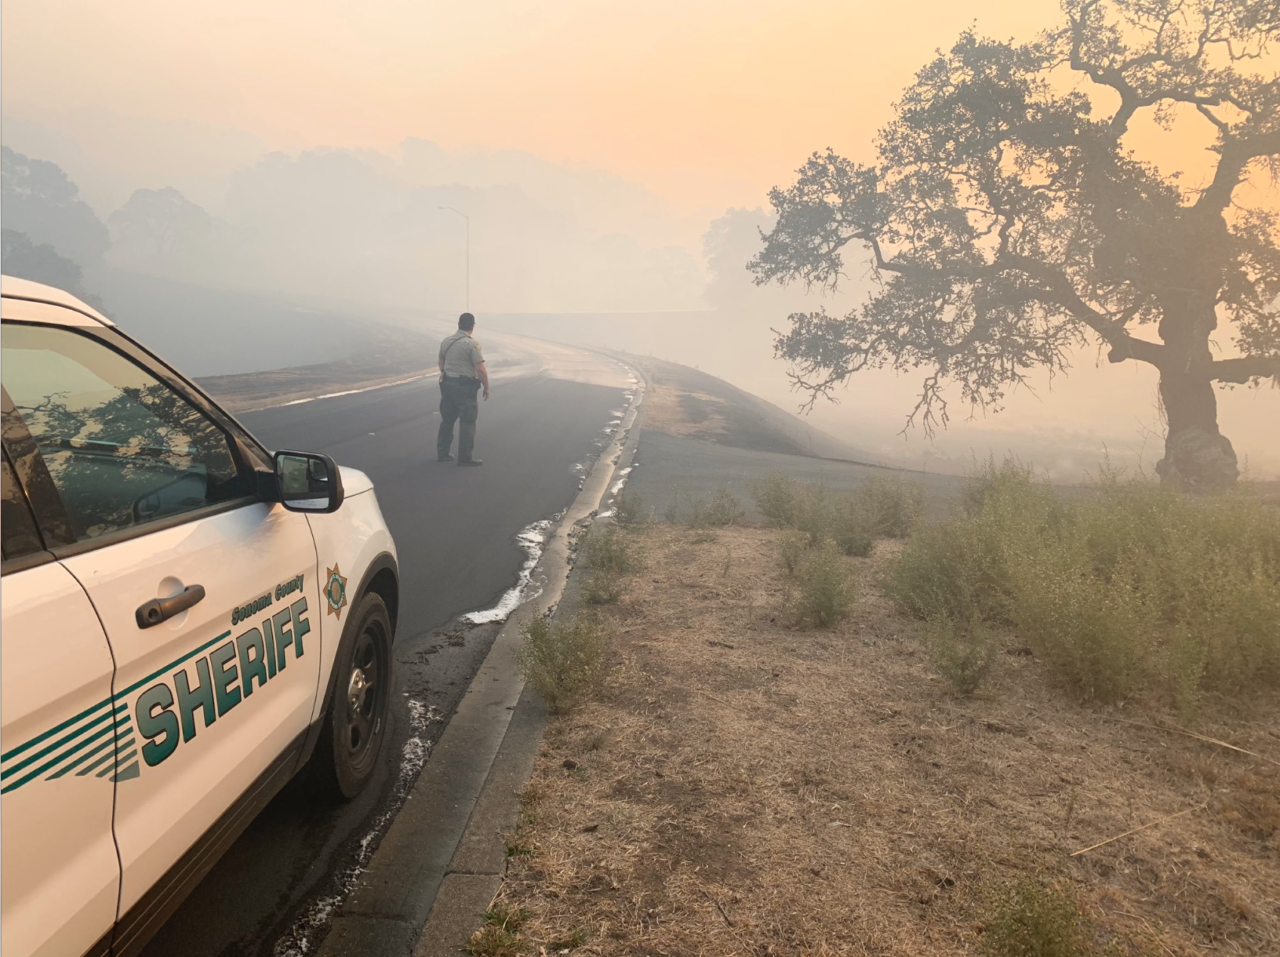 Conditions near Santa Rosa, Oct. 28, 2019. /Sonoma County Sheriff's Department-Twitter